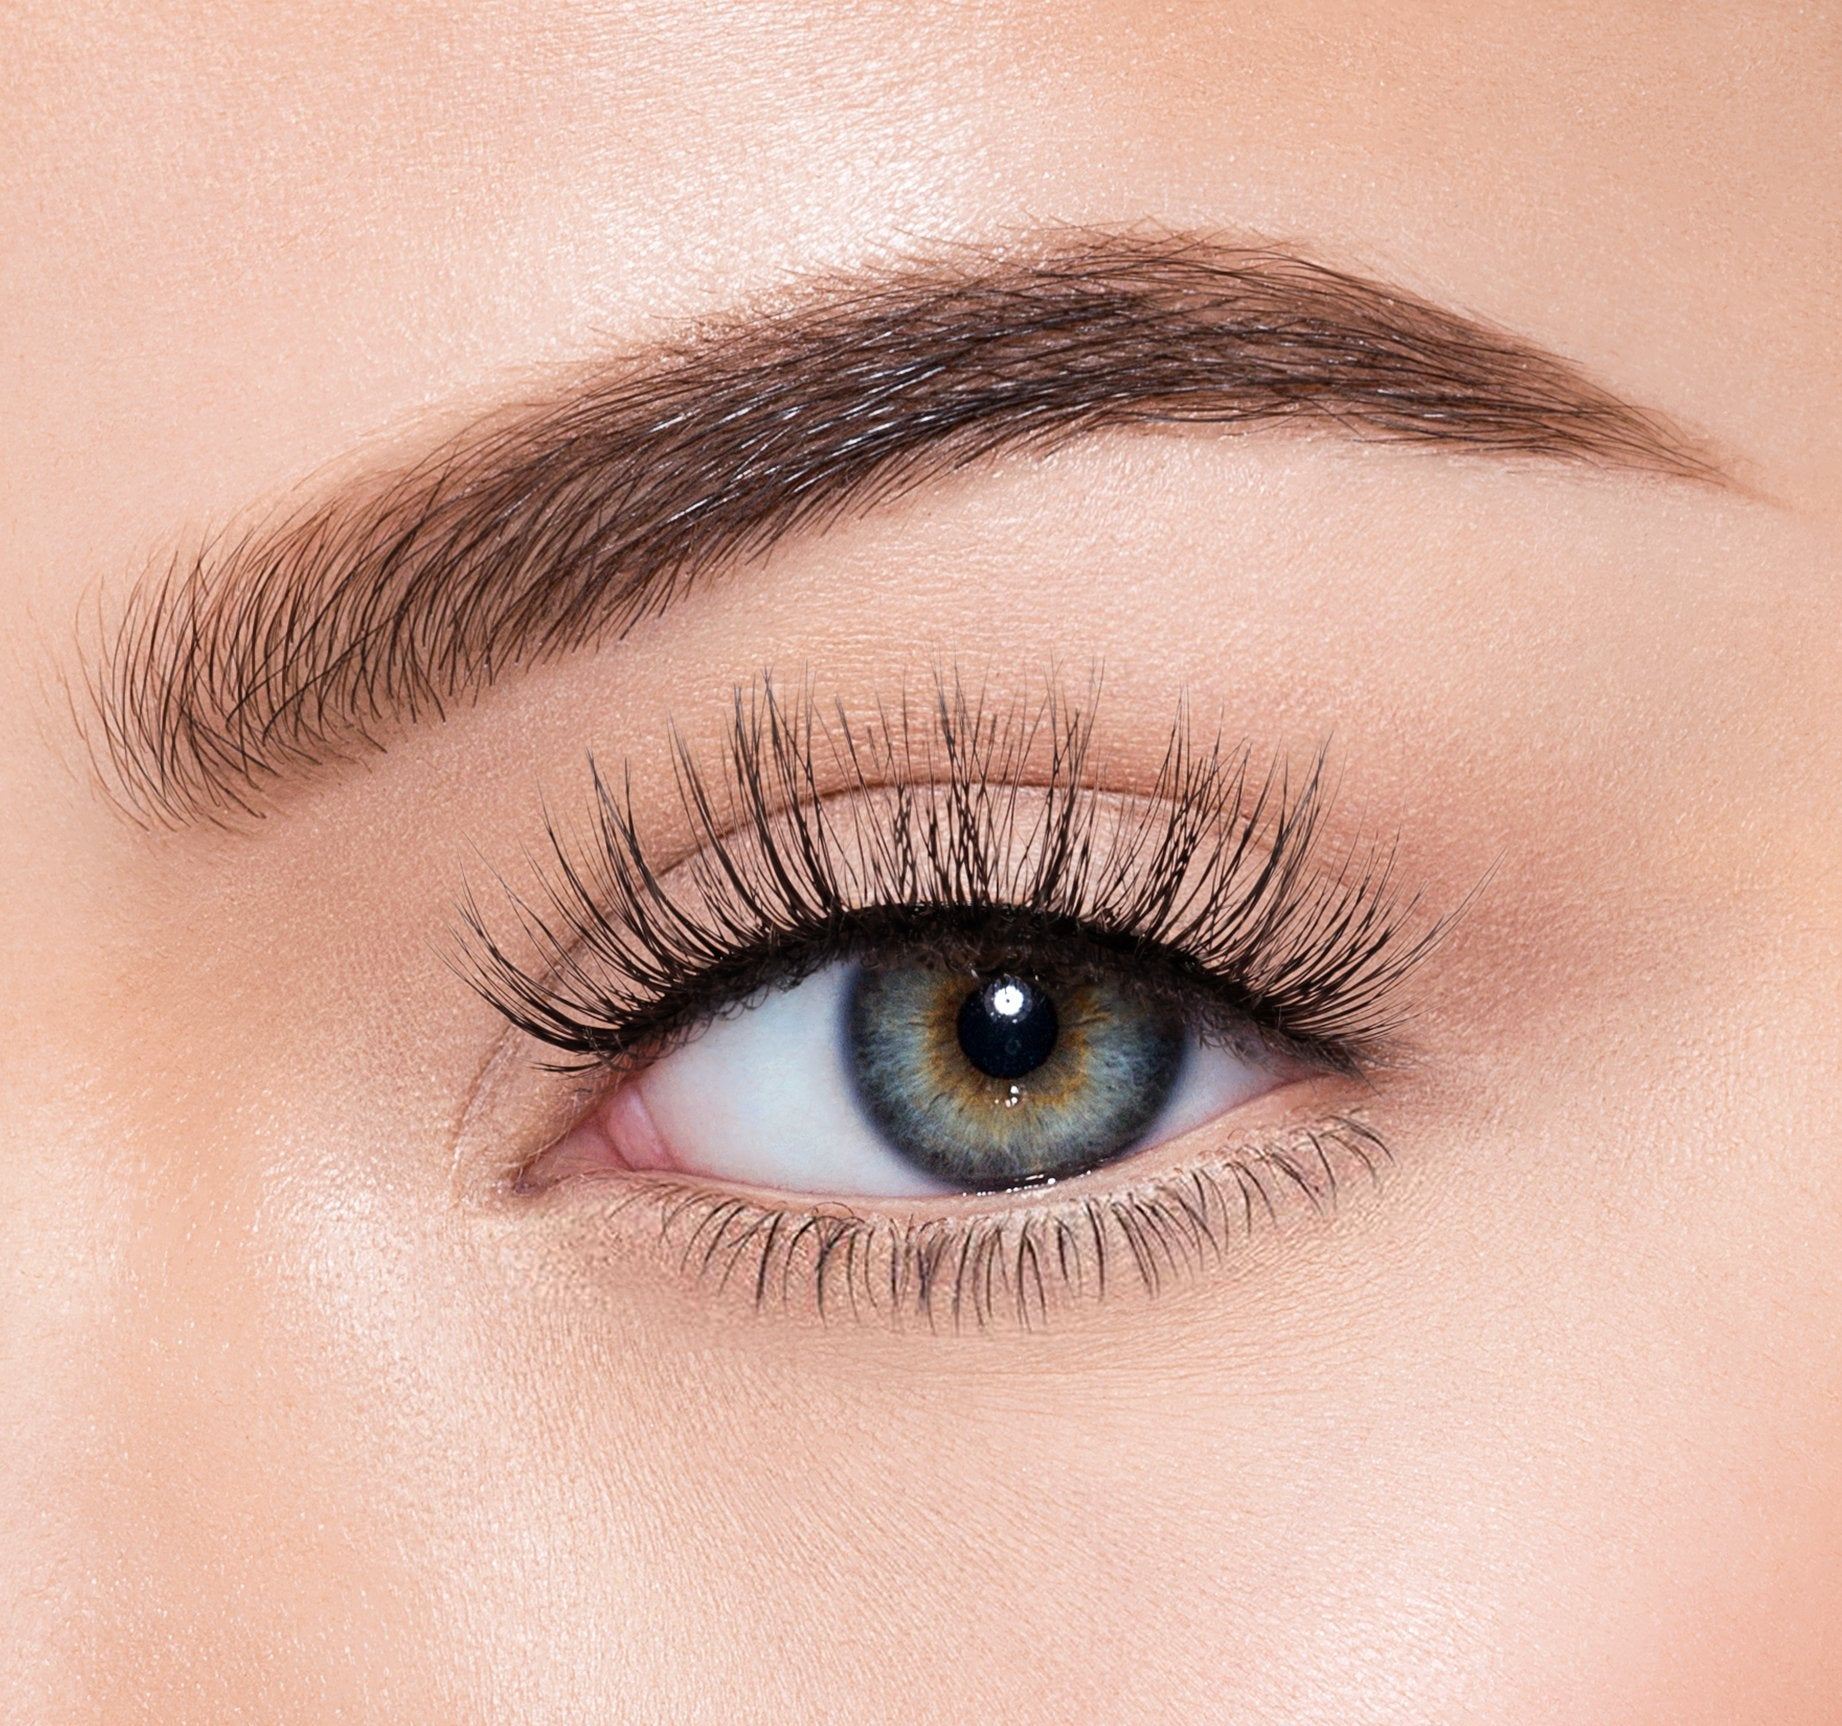 PREMIUM LASHES - A LIL' EXTRA ON MODEL, view larger image